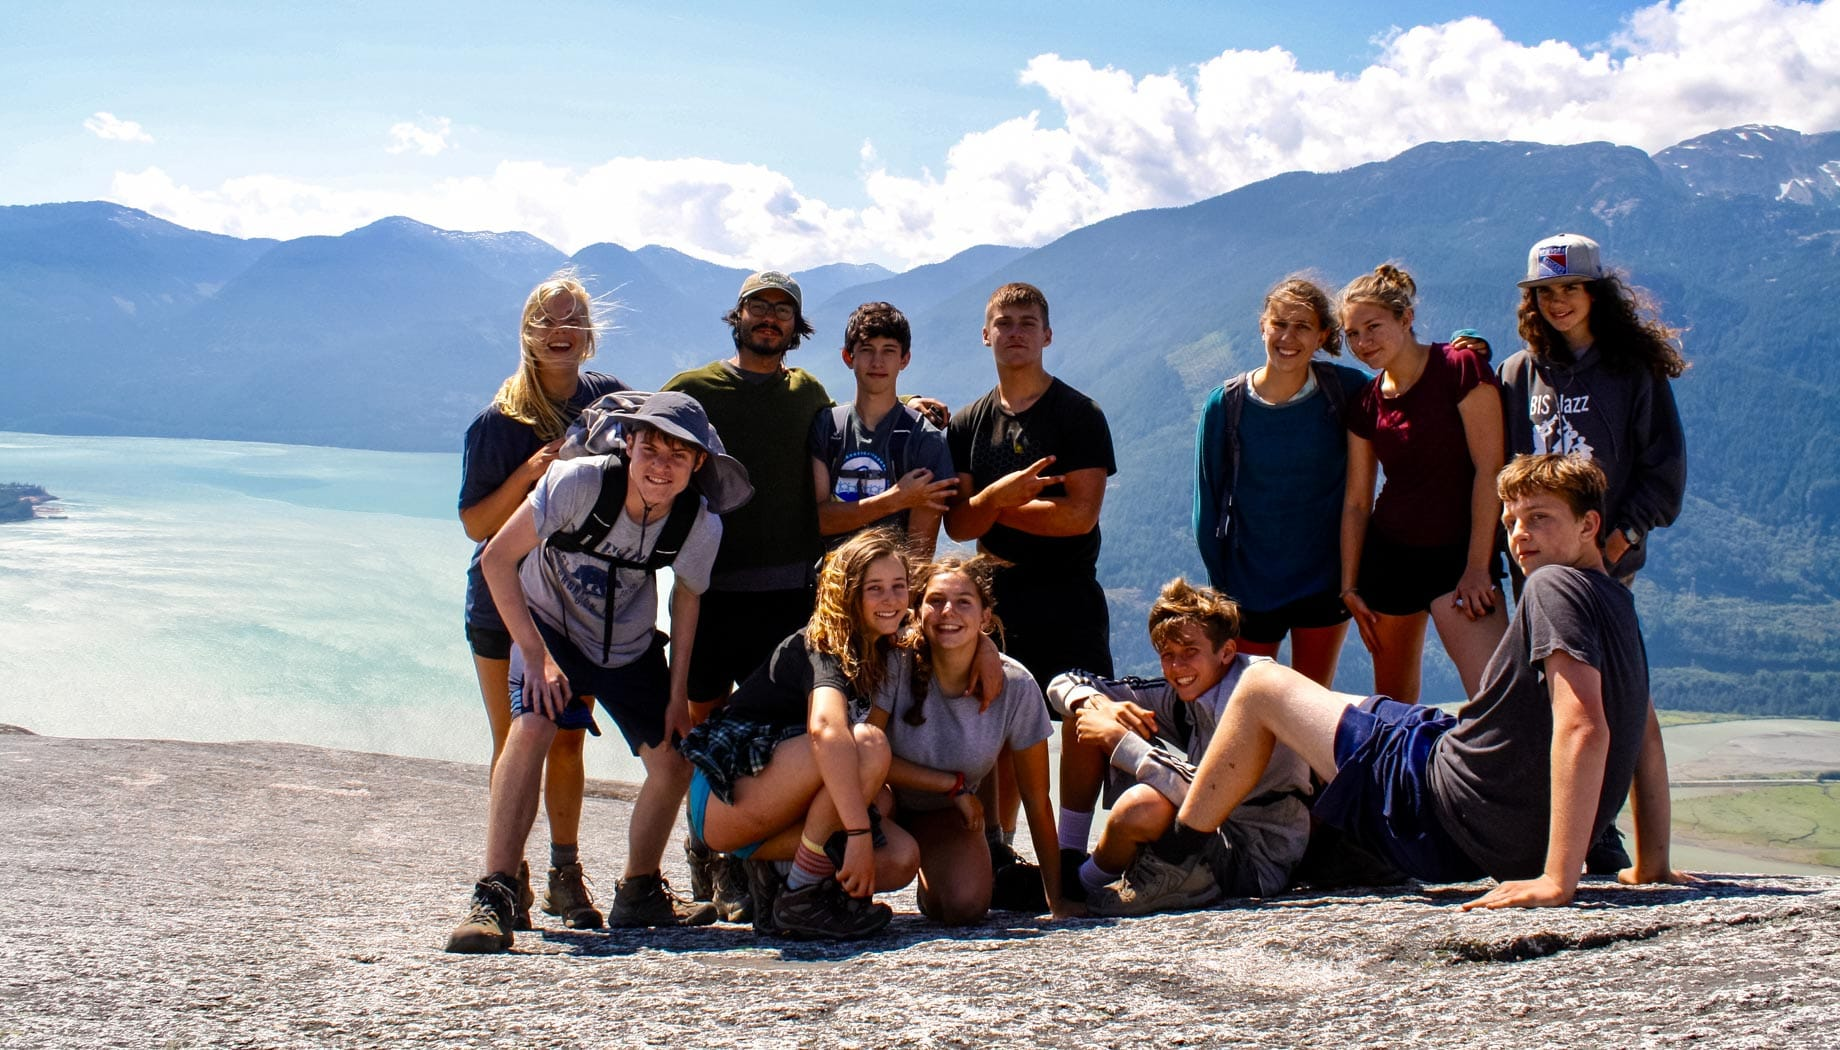 Hiking on the Northwest Canada quest